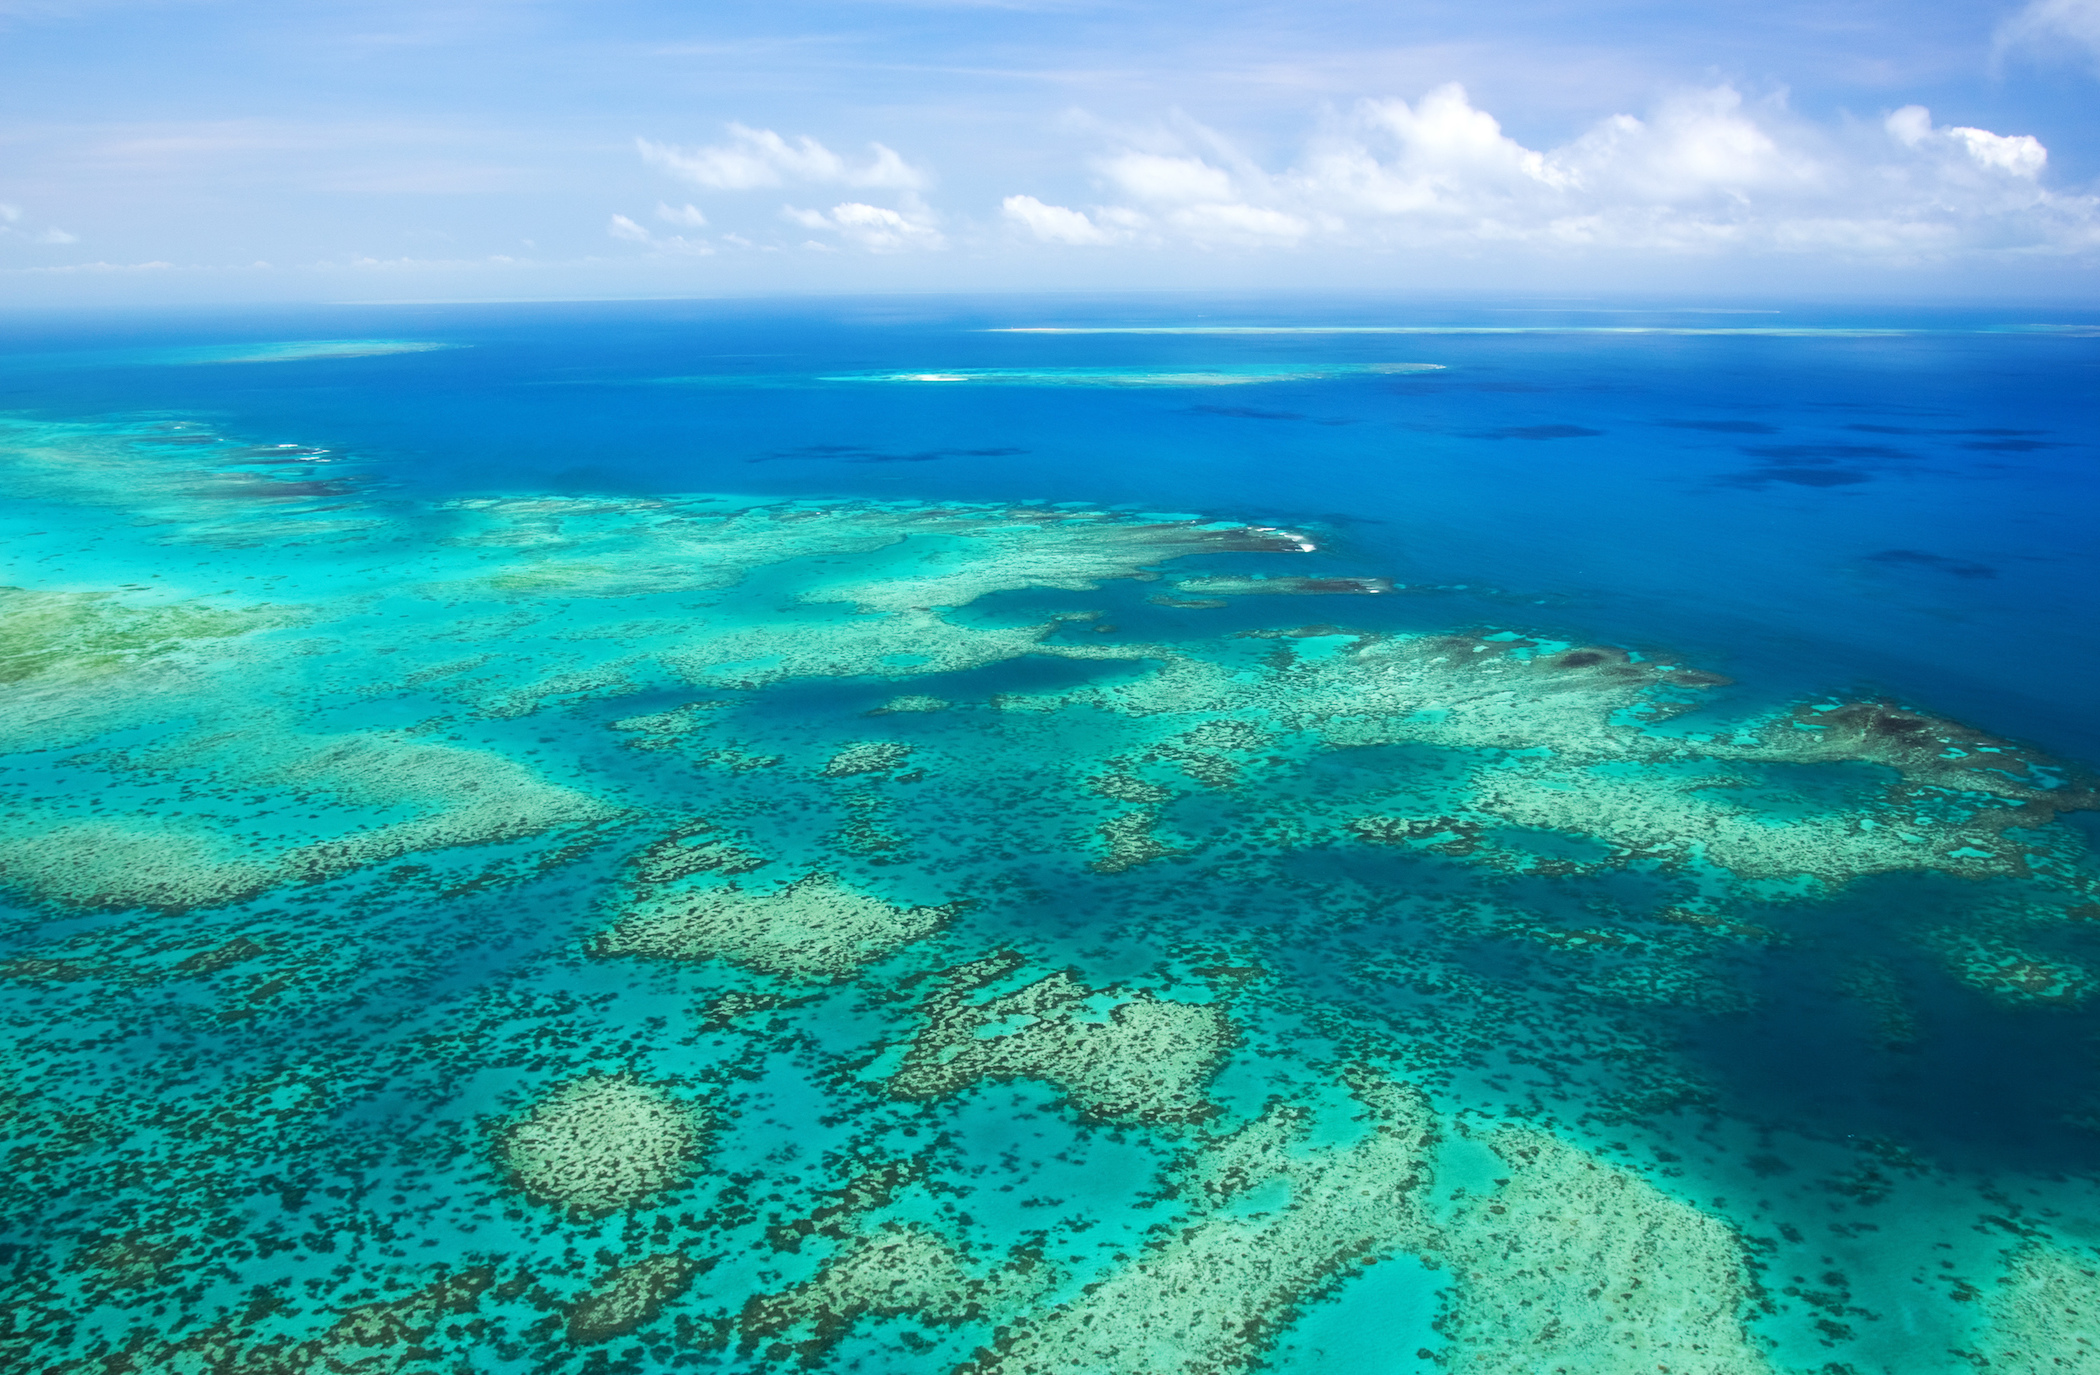 A new study has found that protected zones are beneficial to fish populations along the Great Barrier Reef.